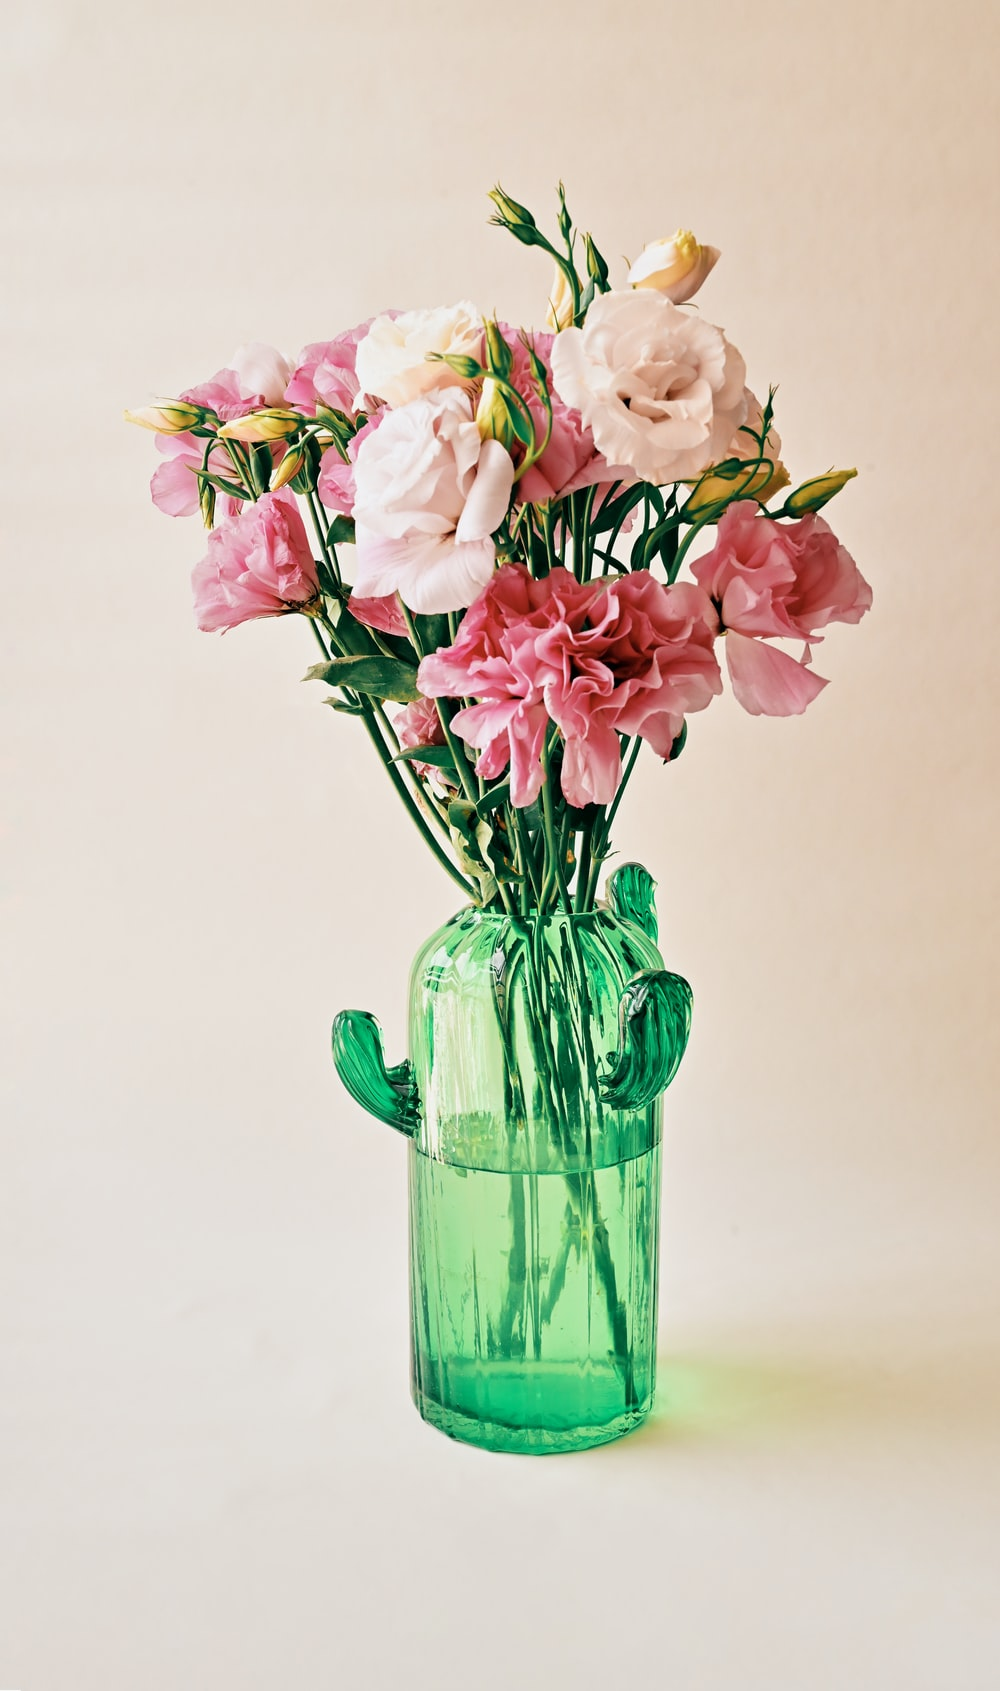 pink and white flowers in green glass vase